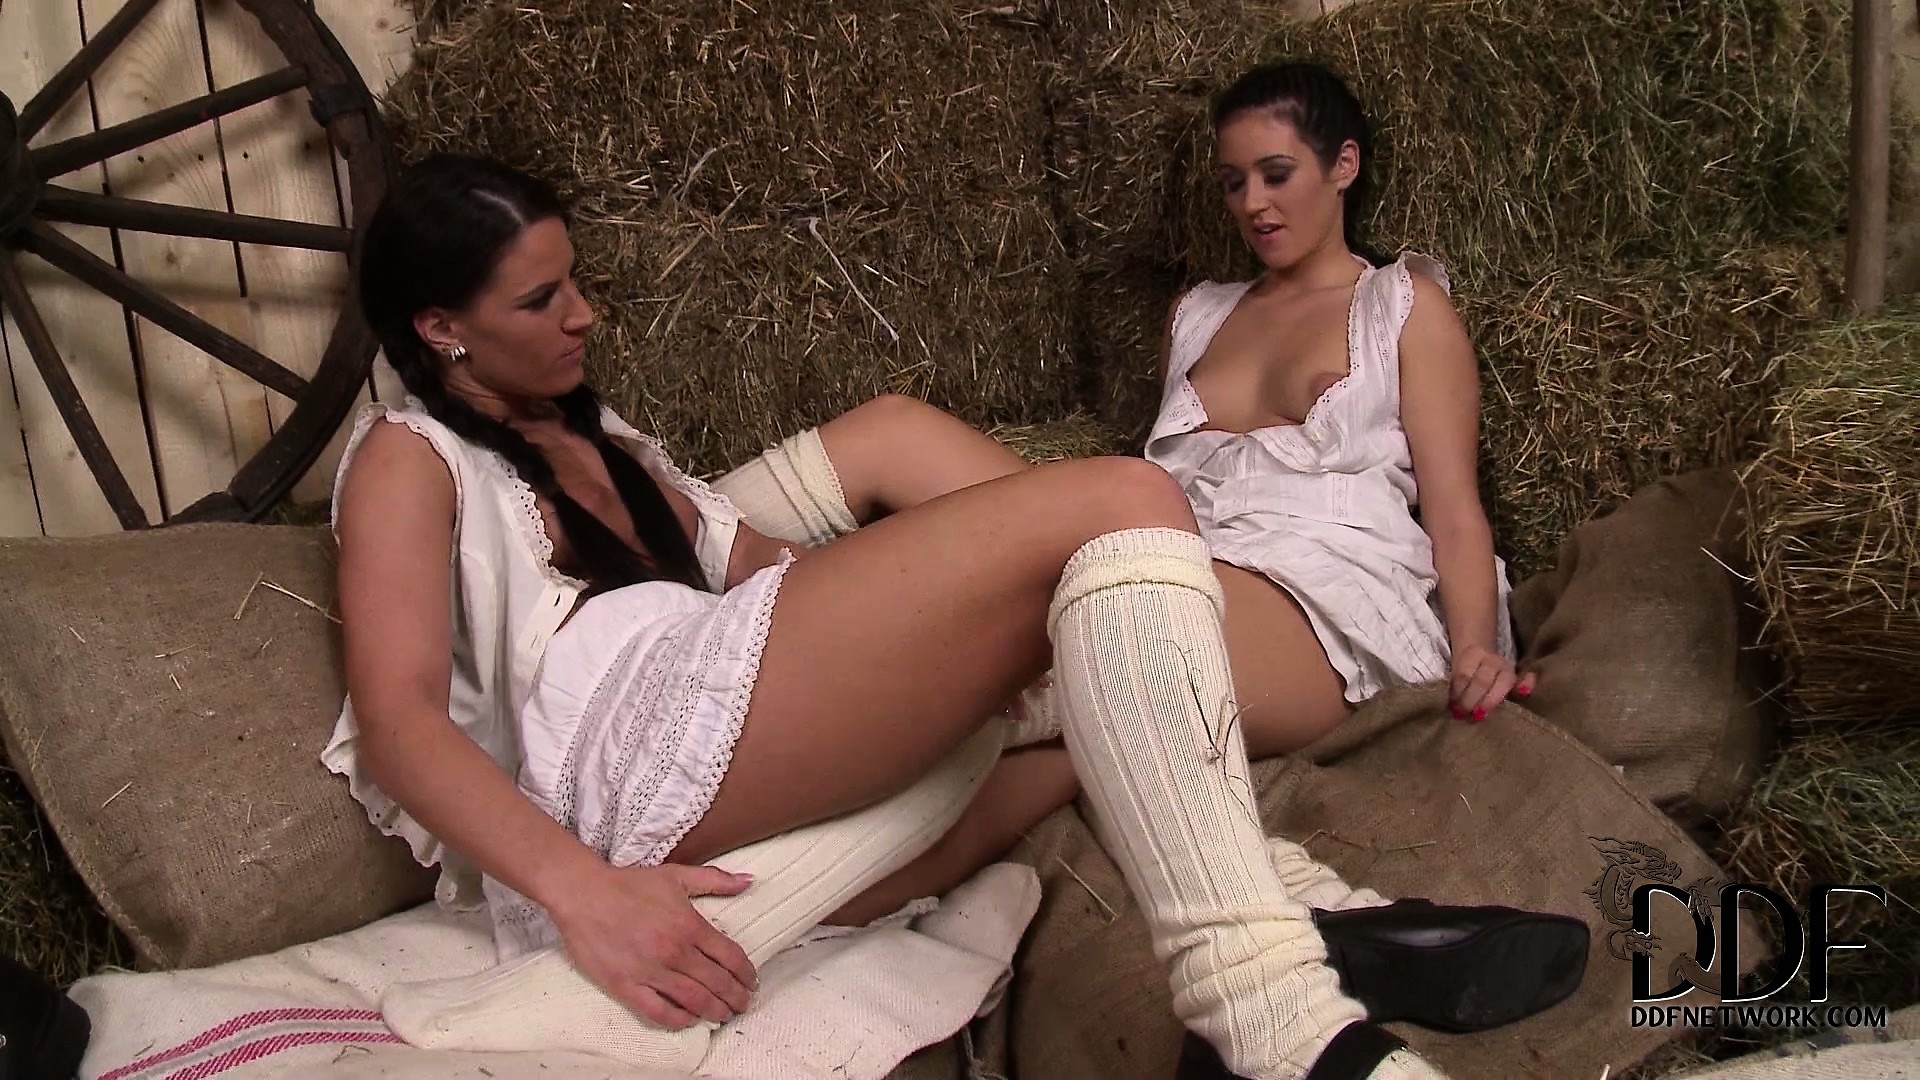 Porno Video of Two Lesbian Farm Girls Meet In The Barn For Some Playful Foot Work